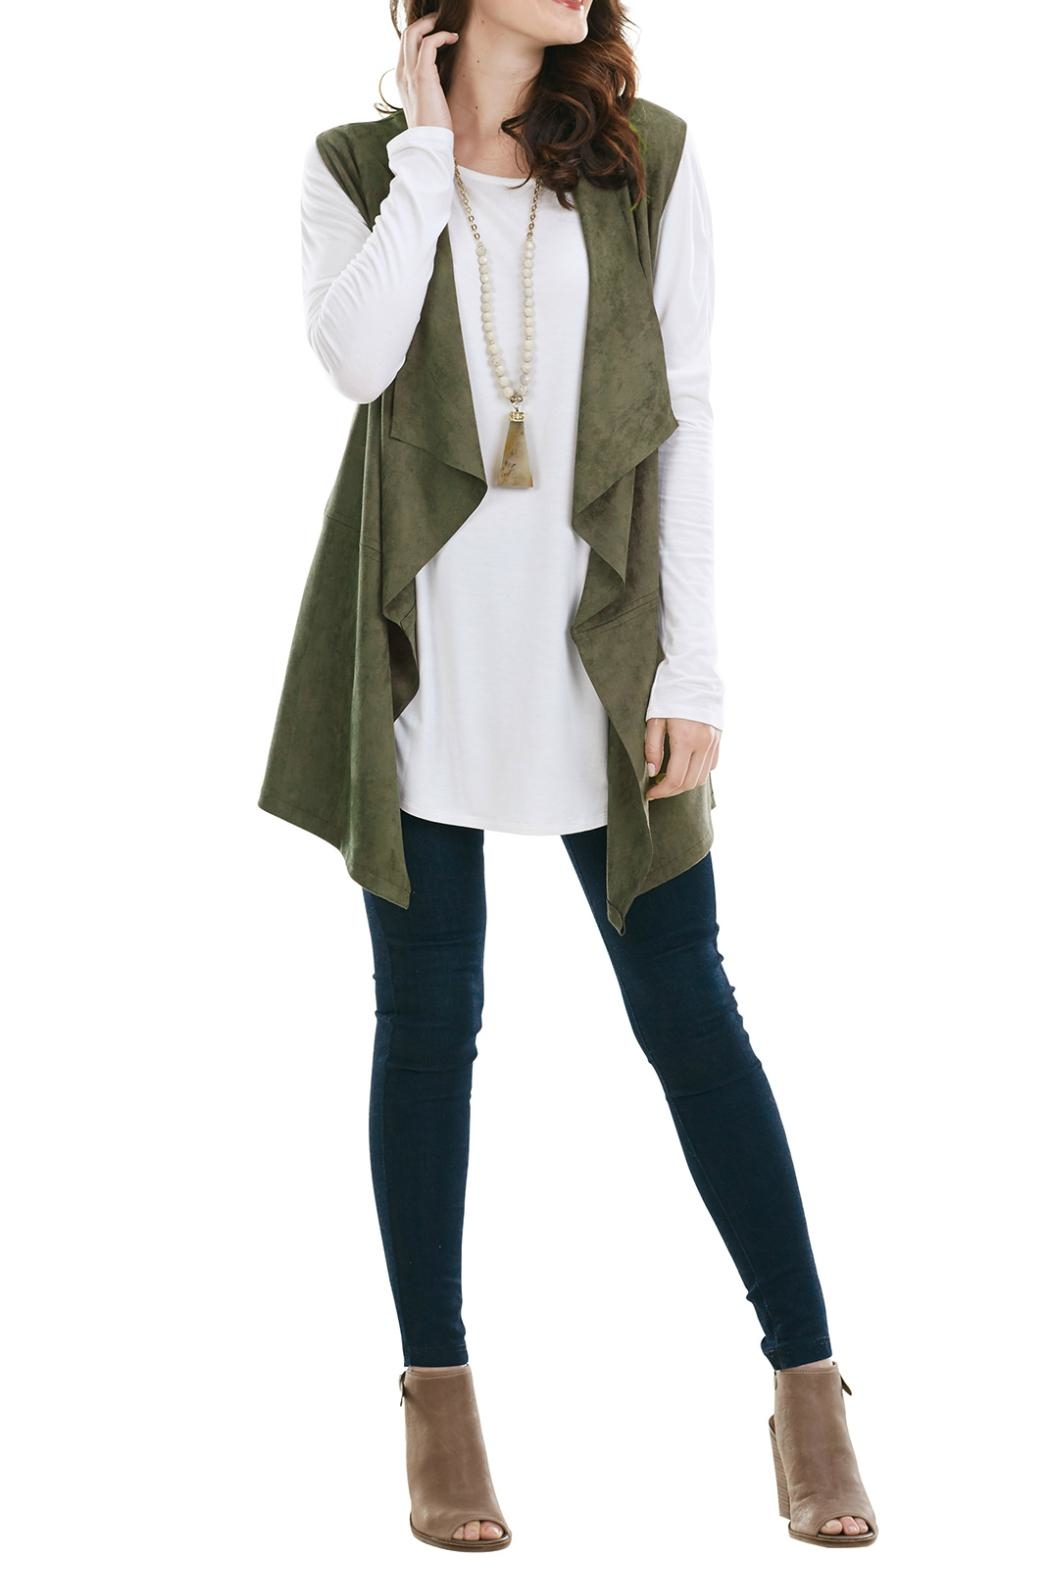 Mud Pie Faux Suede Vest - Main Image